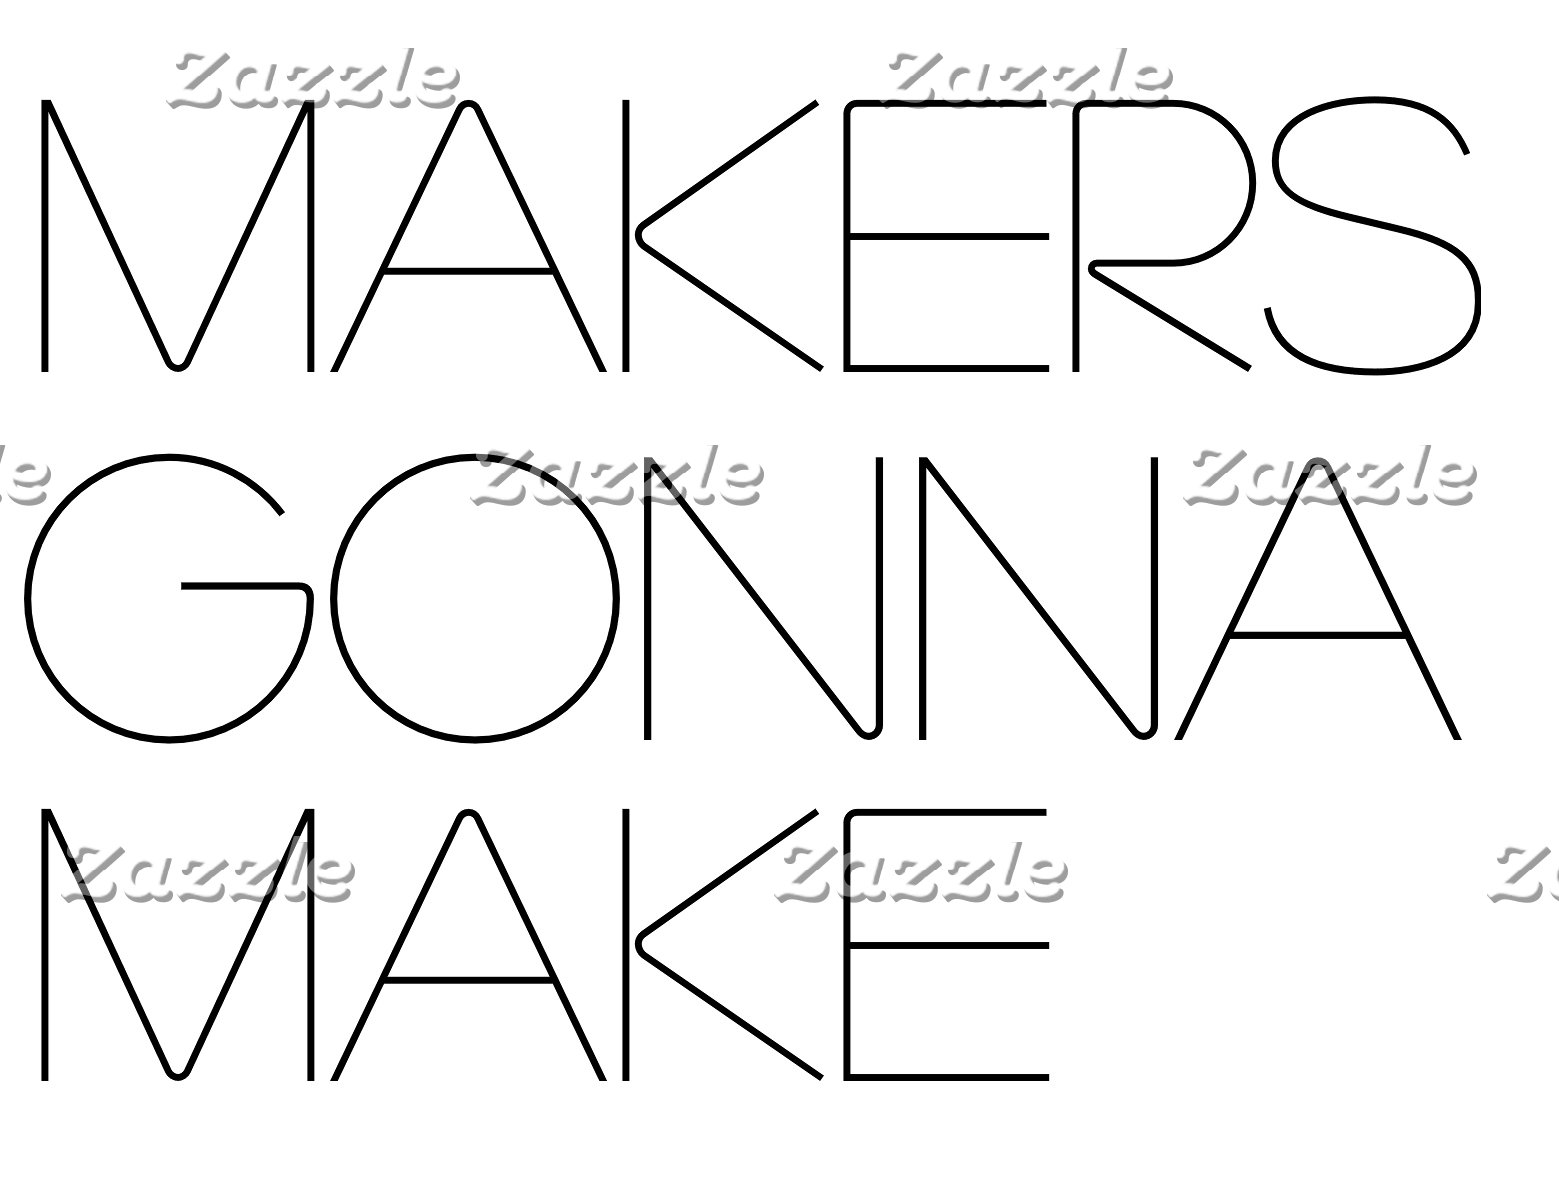 For Makers